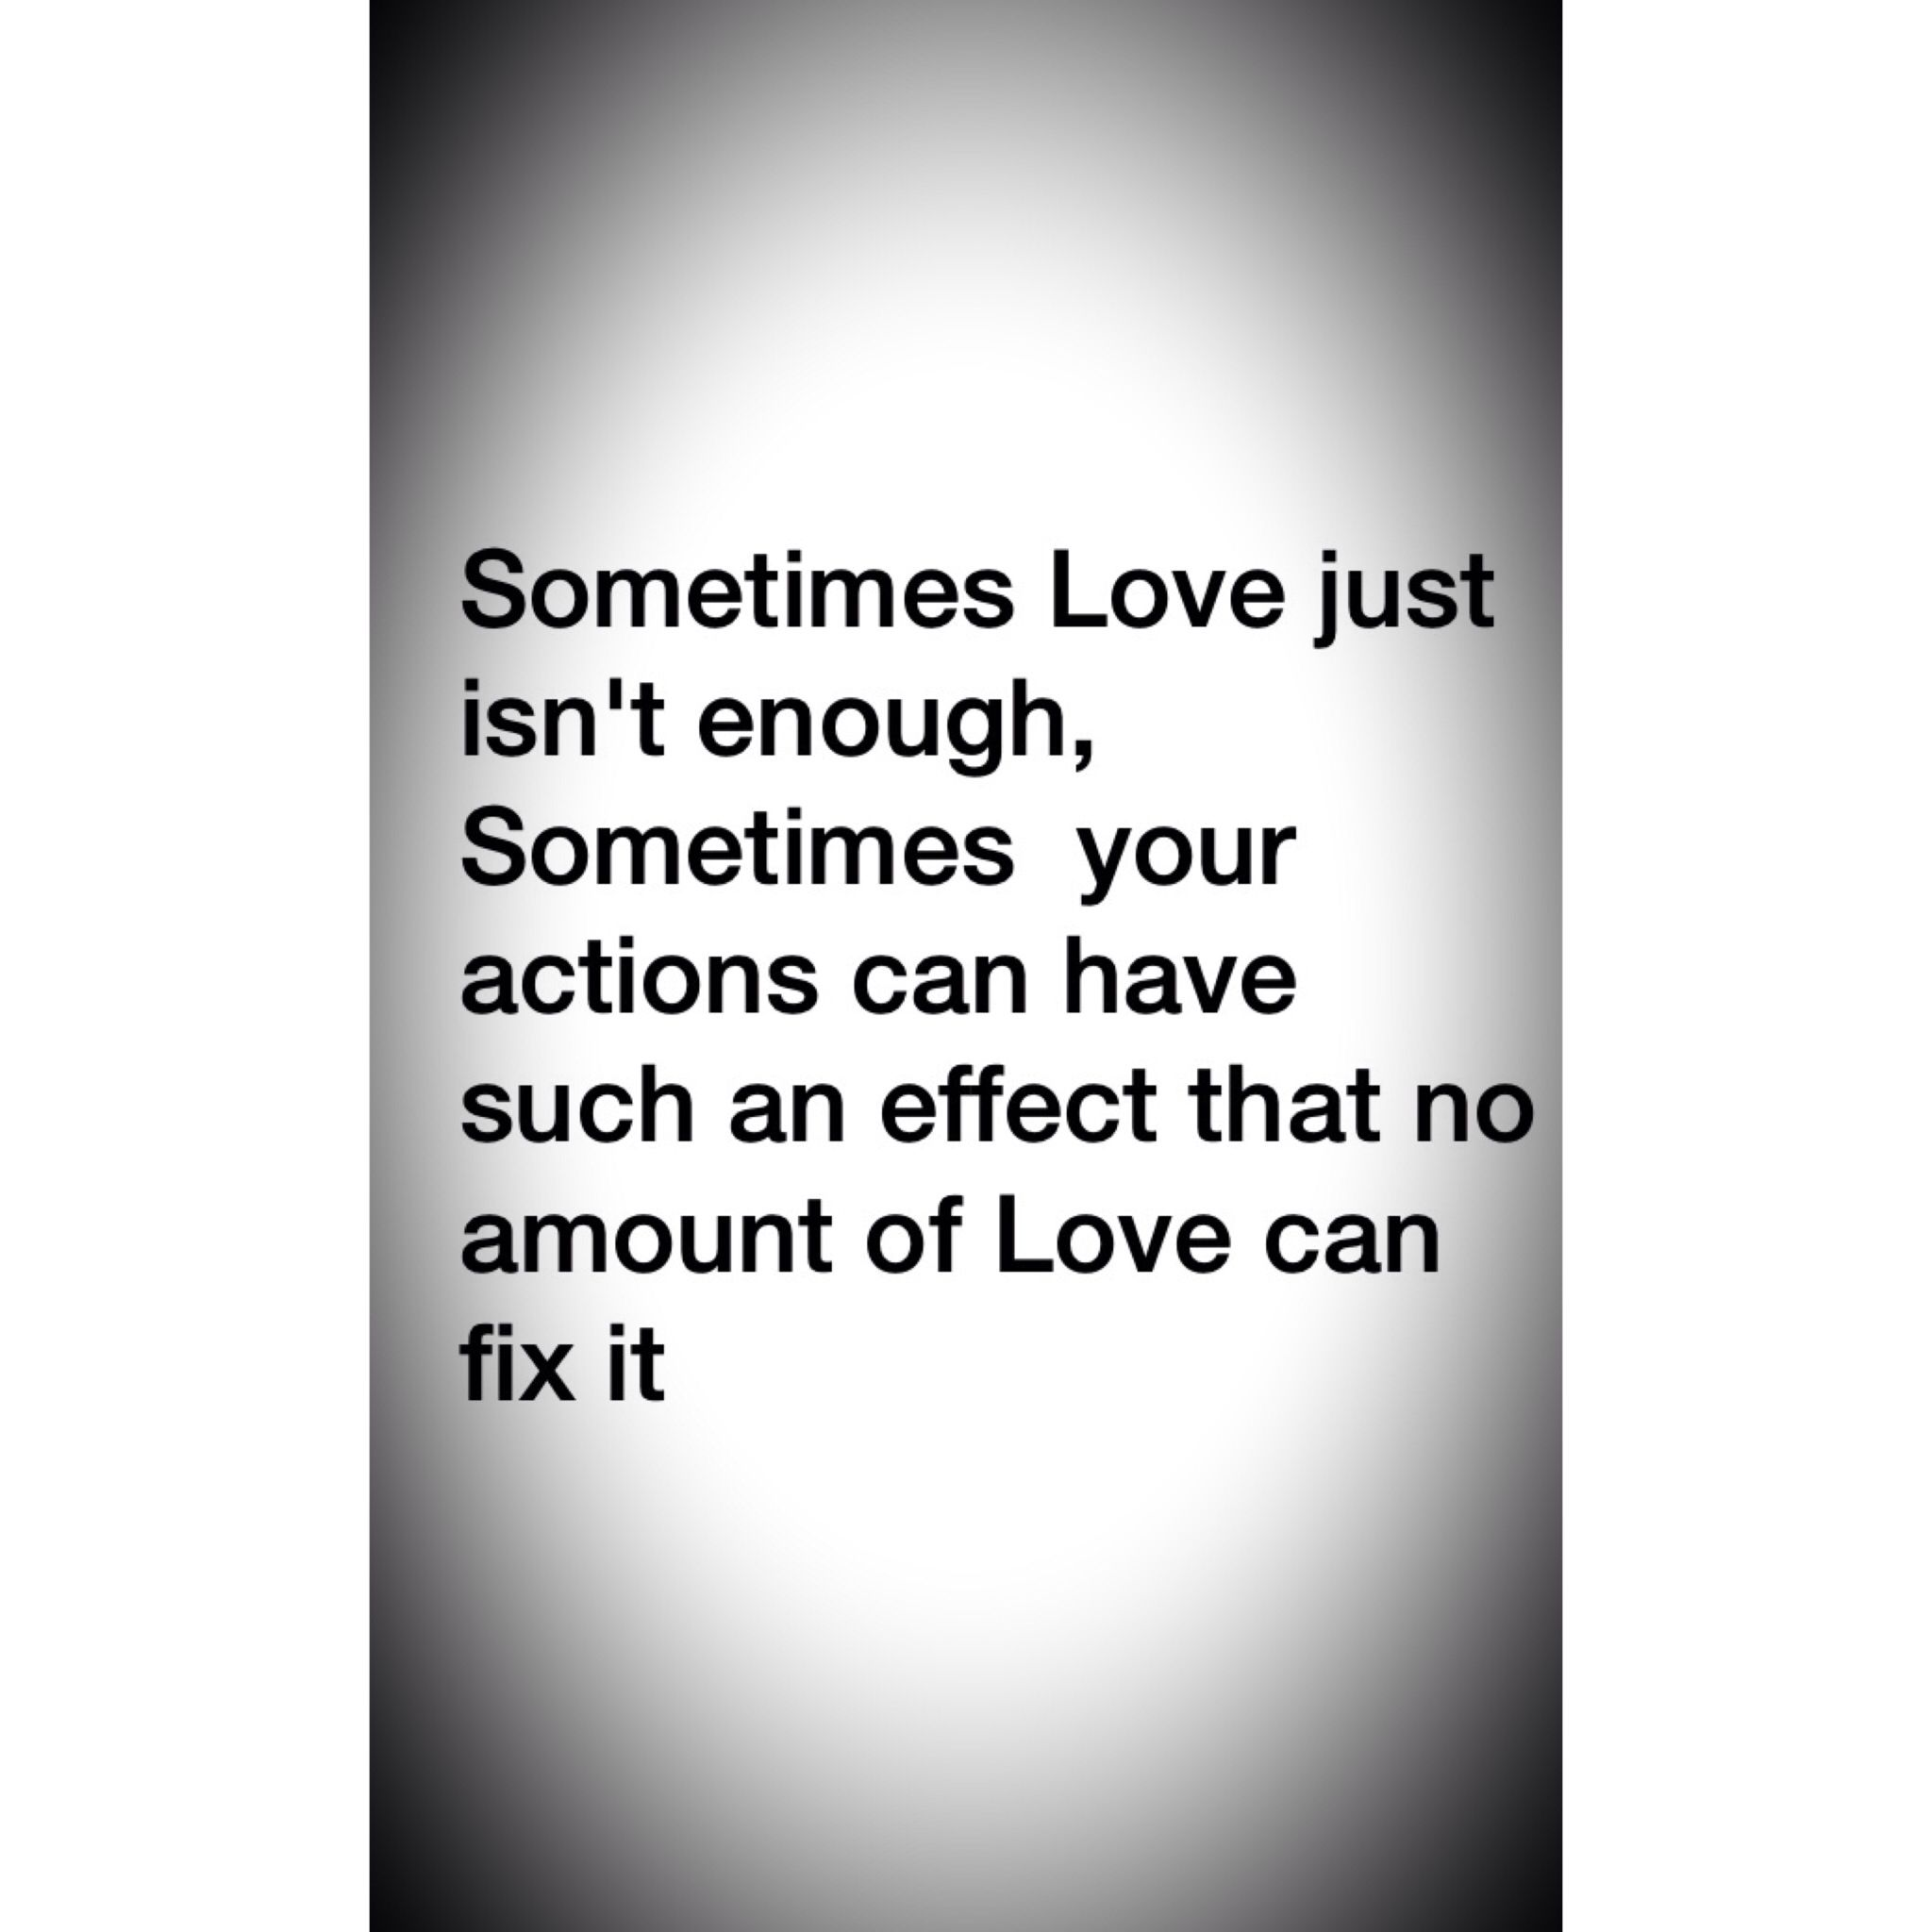 Love Isnt Enough Sometimes Exs Suck Enough Is Enough Quotes